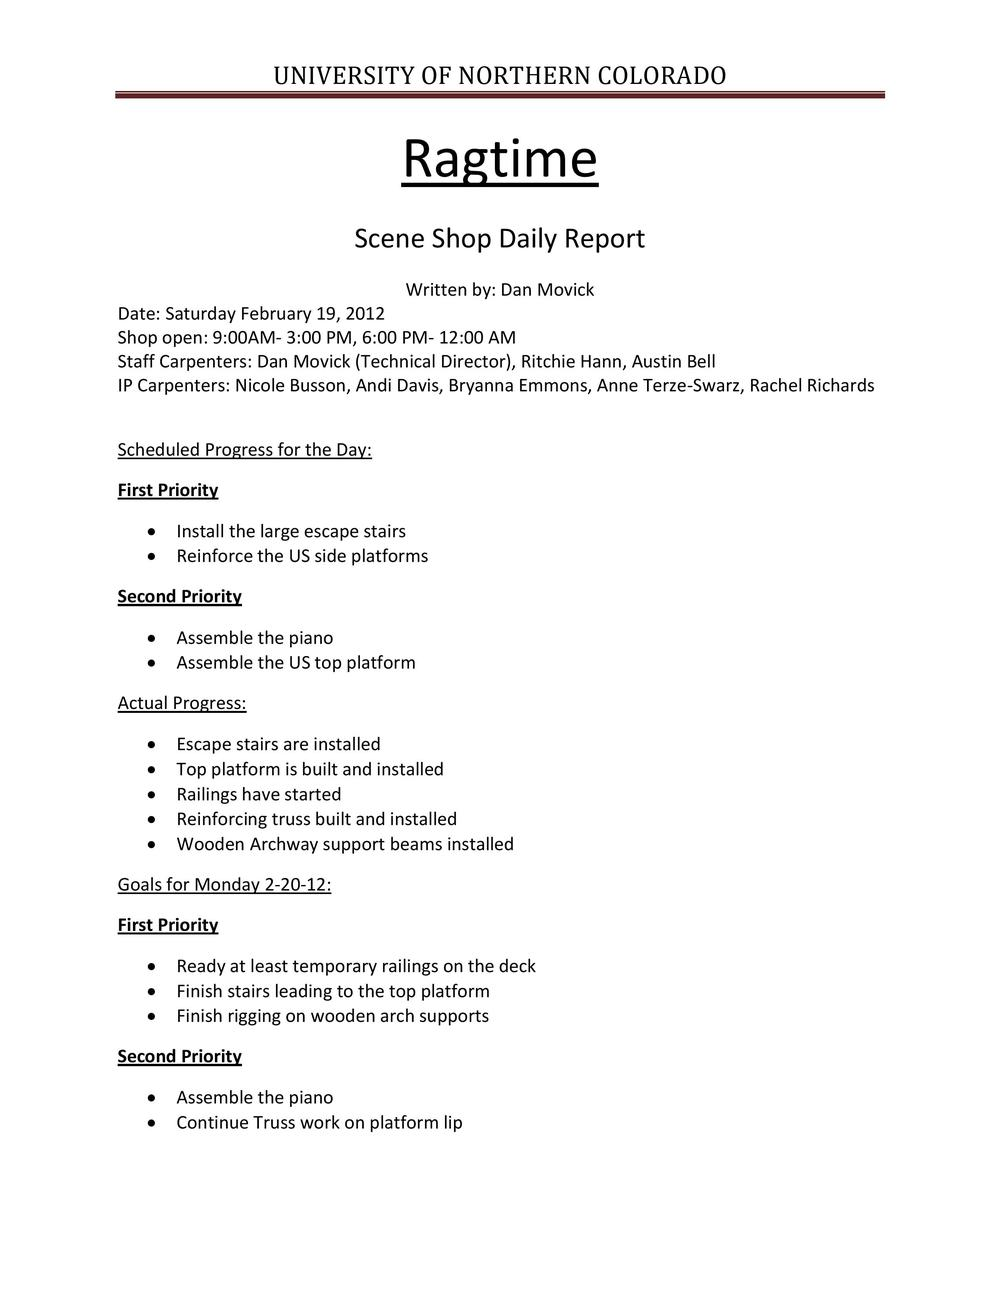 Ragtime- Shop Report 2-19-12-page-001.jpg